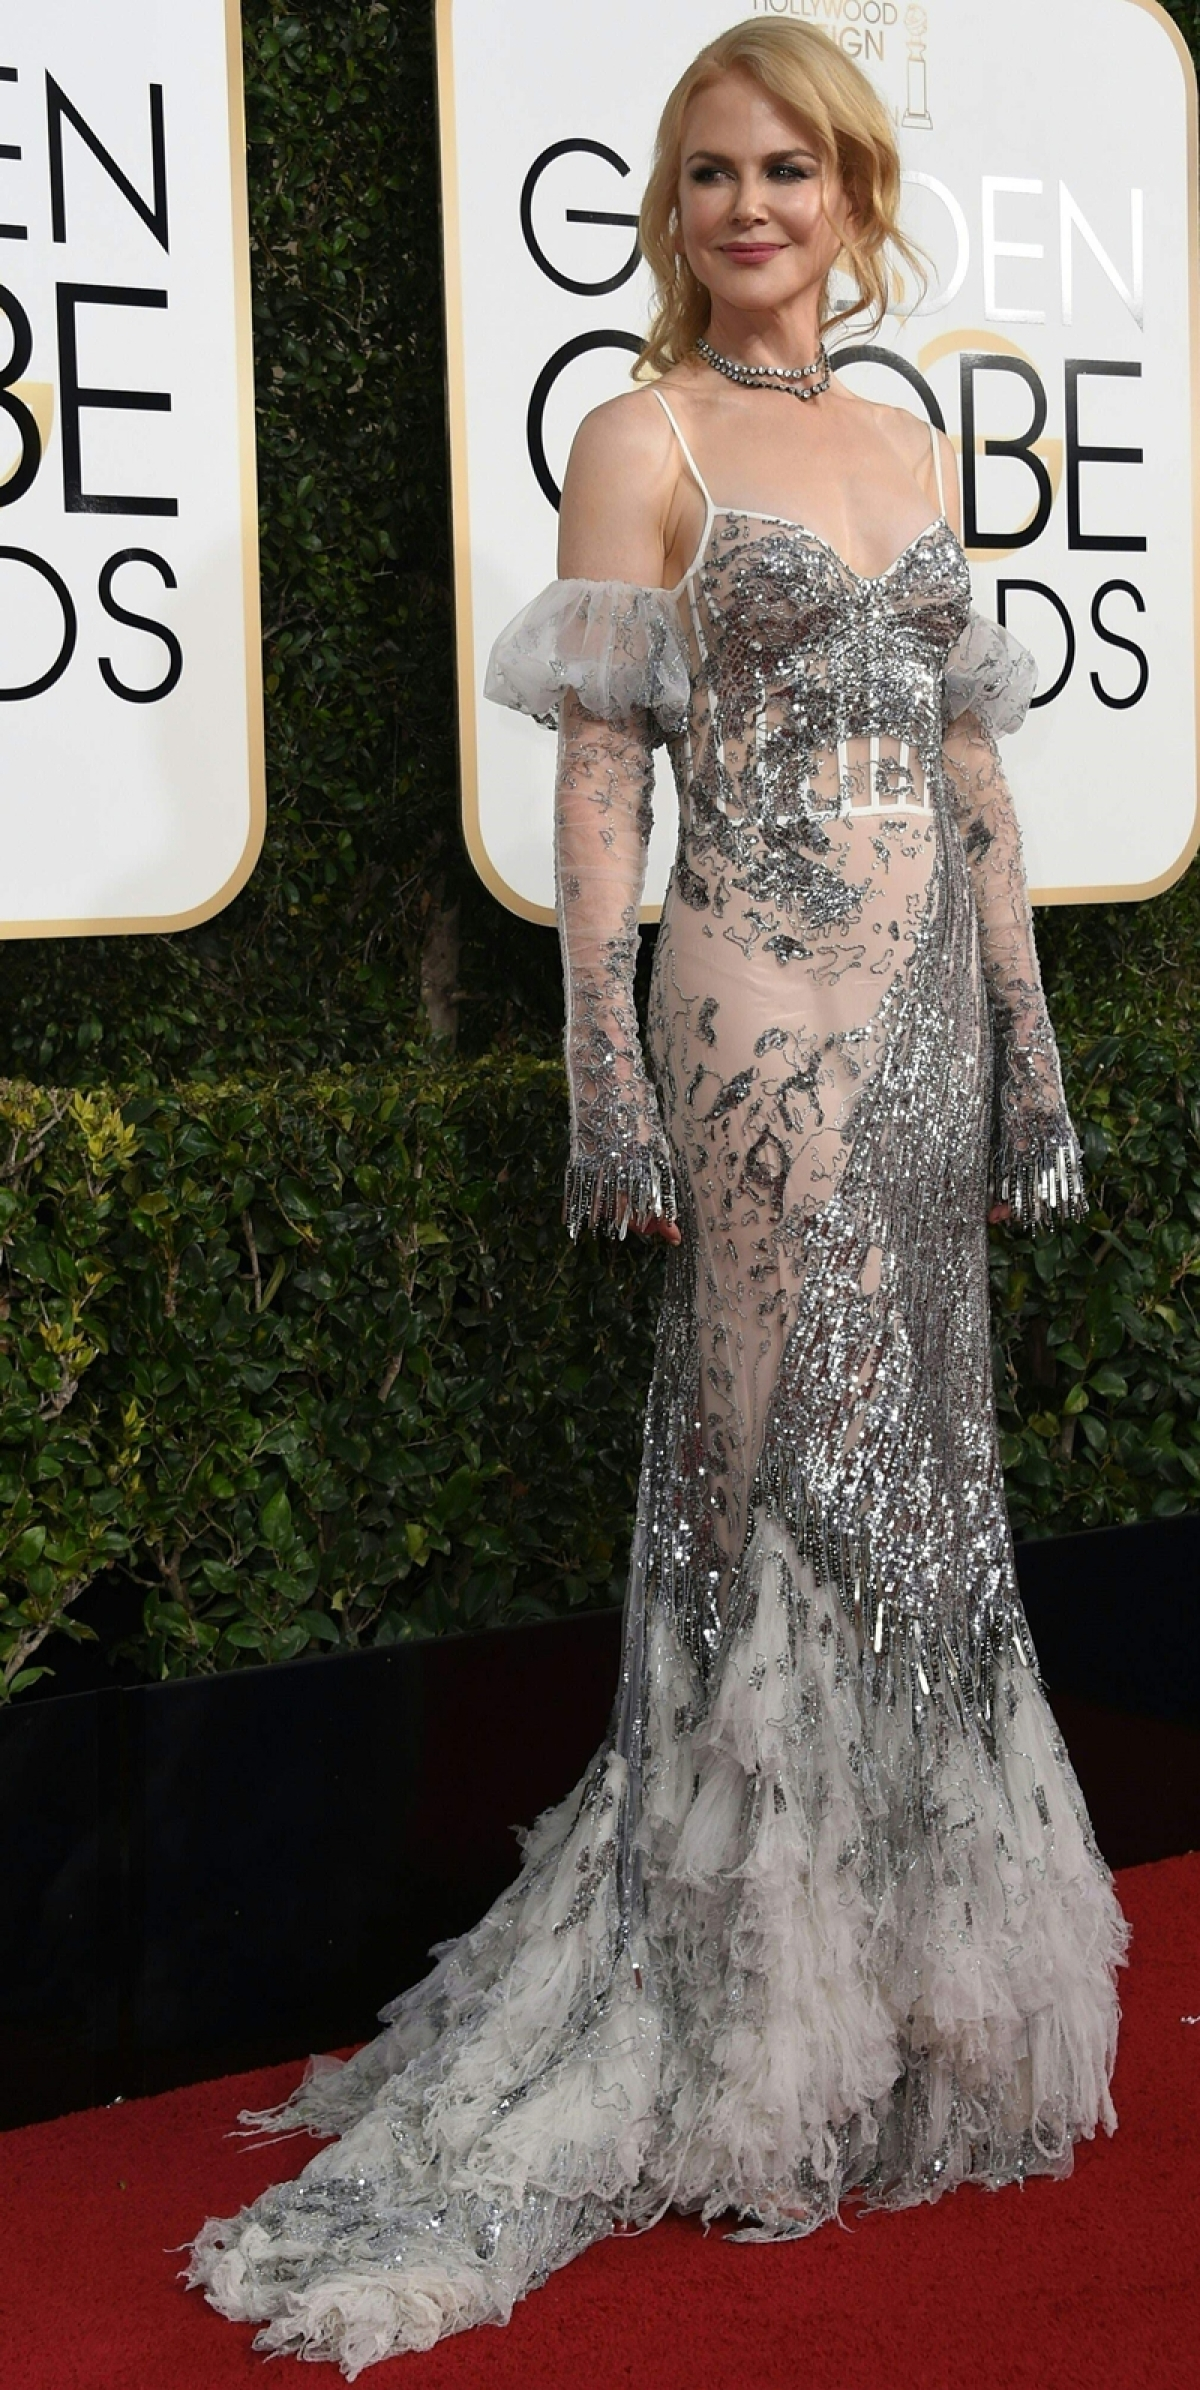 Our picks of best and worst dressed celebs at the Golden Globes 2017